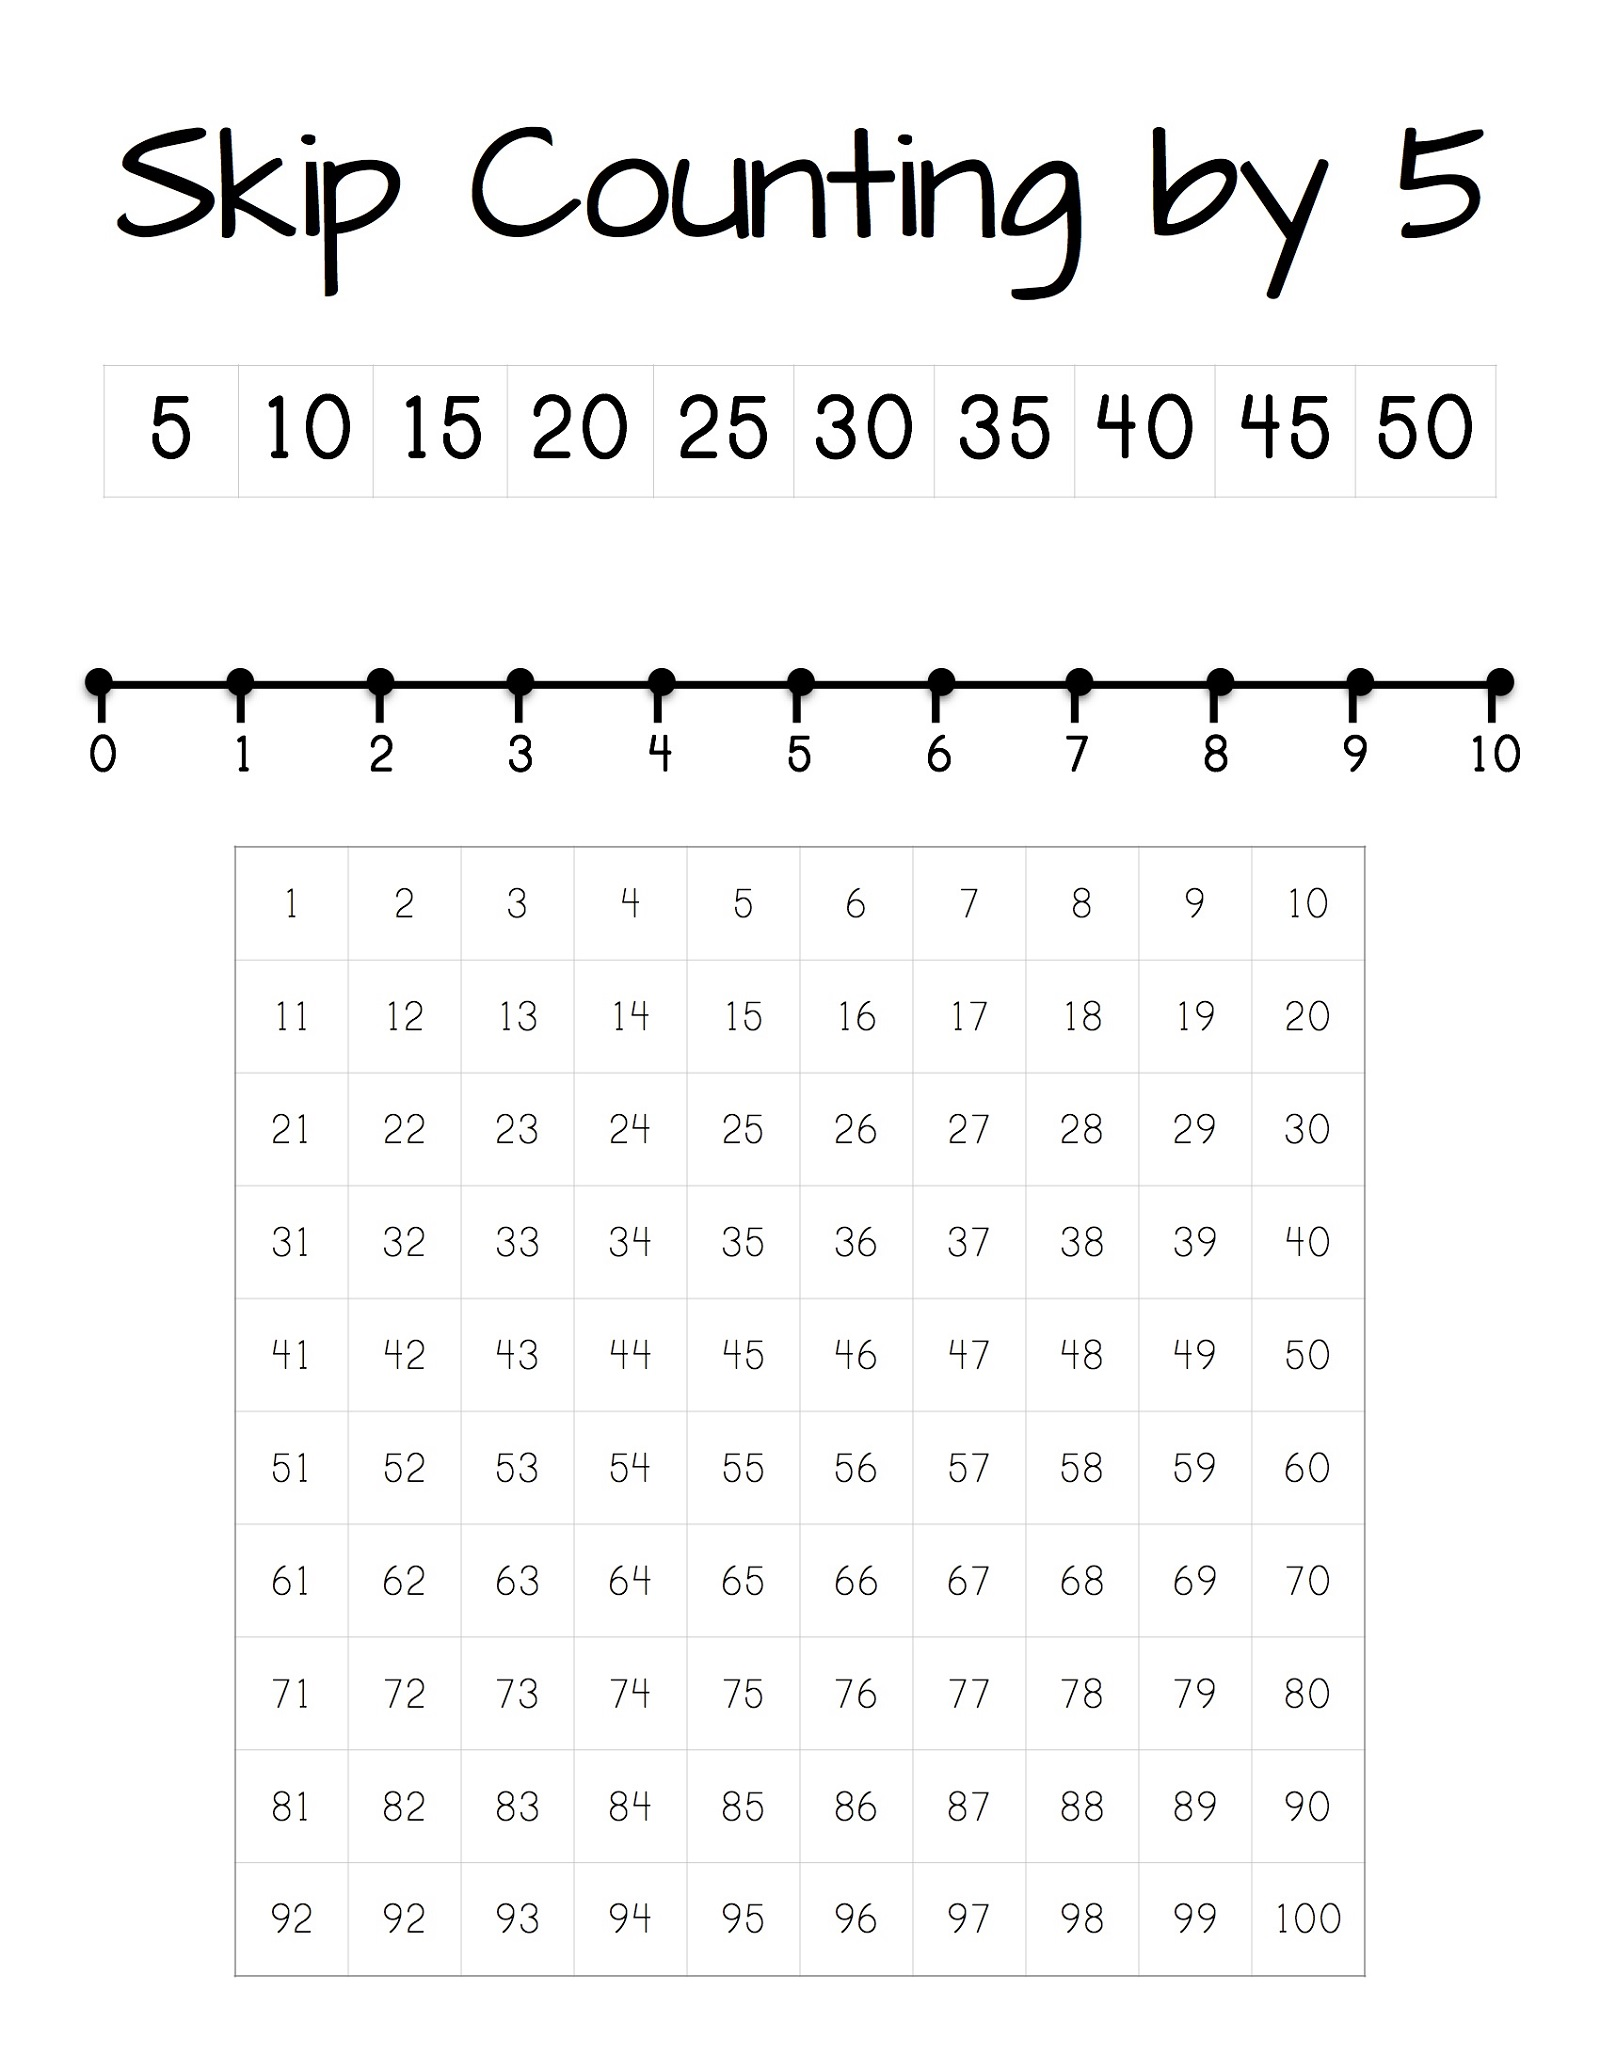 skip-count-by-5-printable